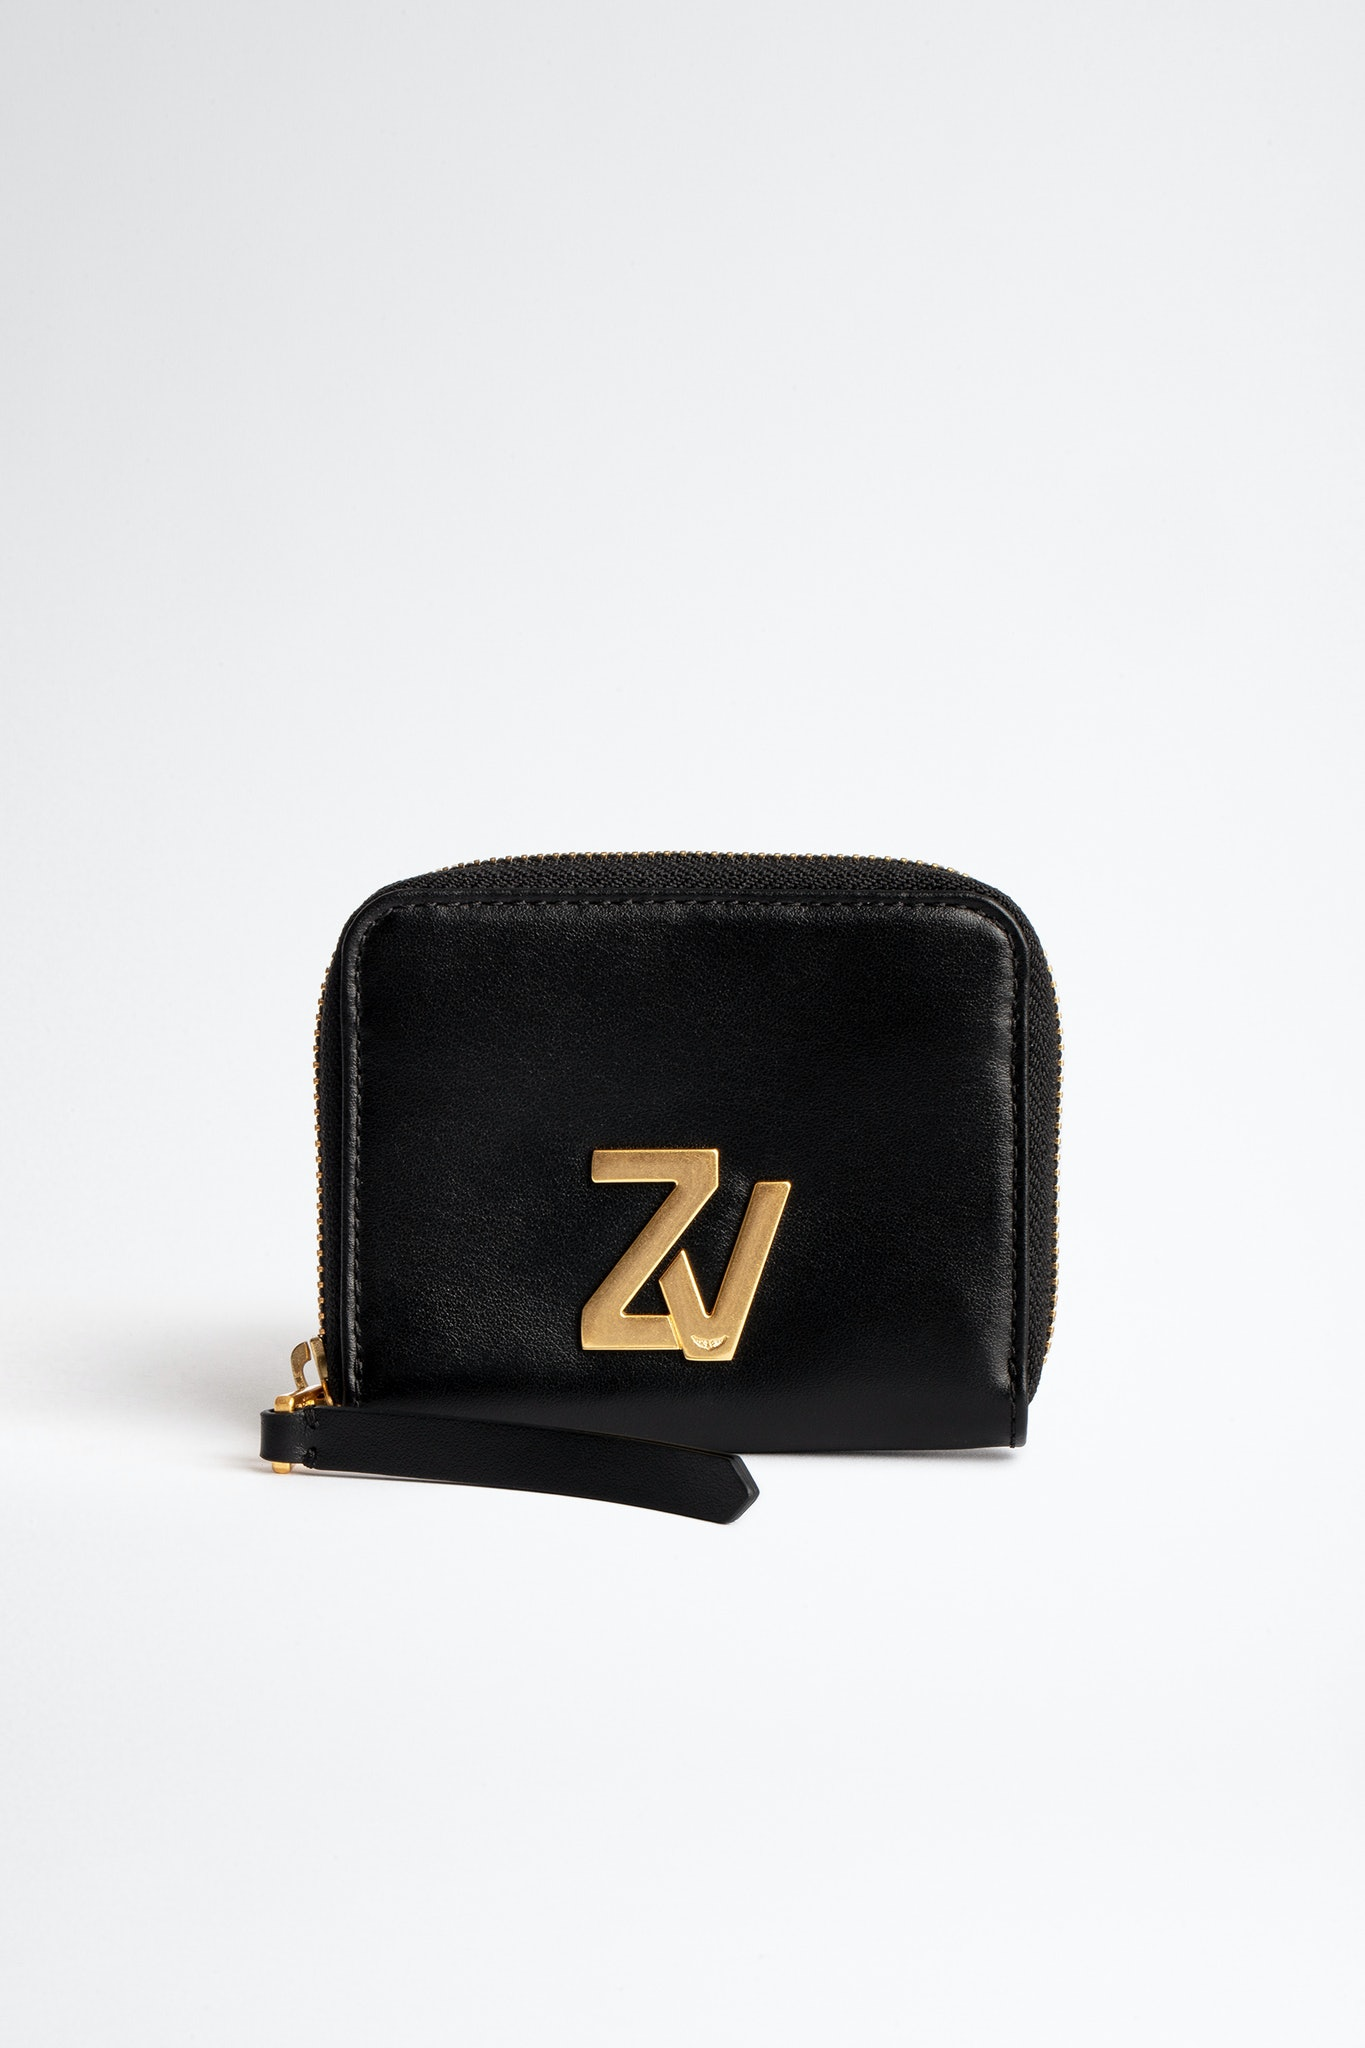 ZV Initiale Le Compact Coin Purse